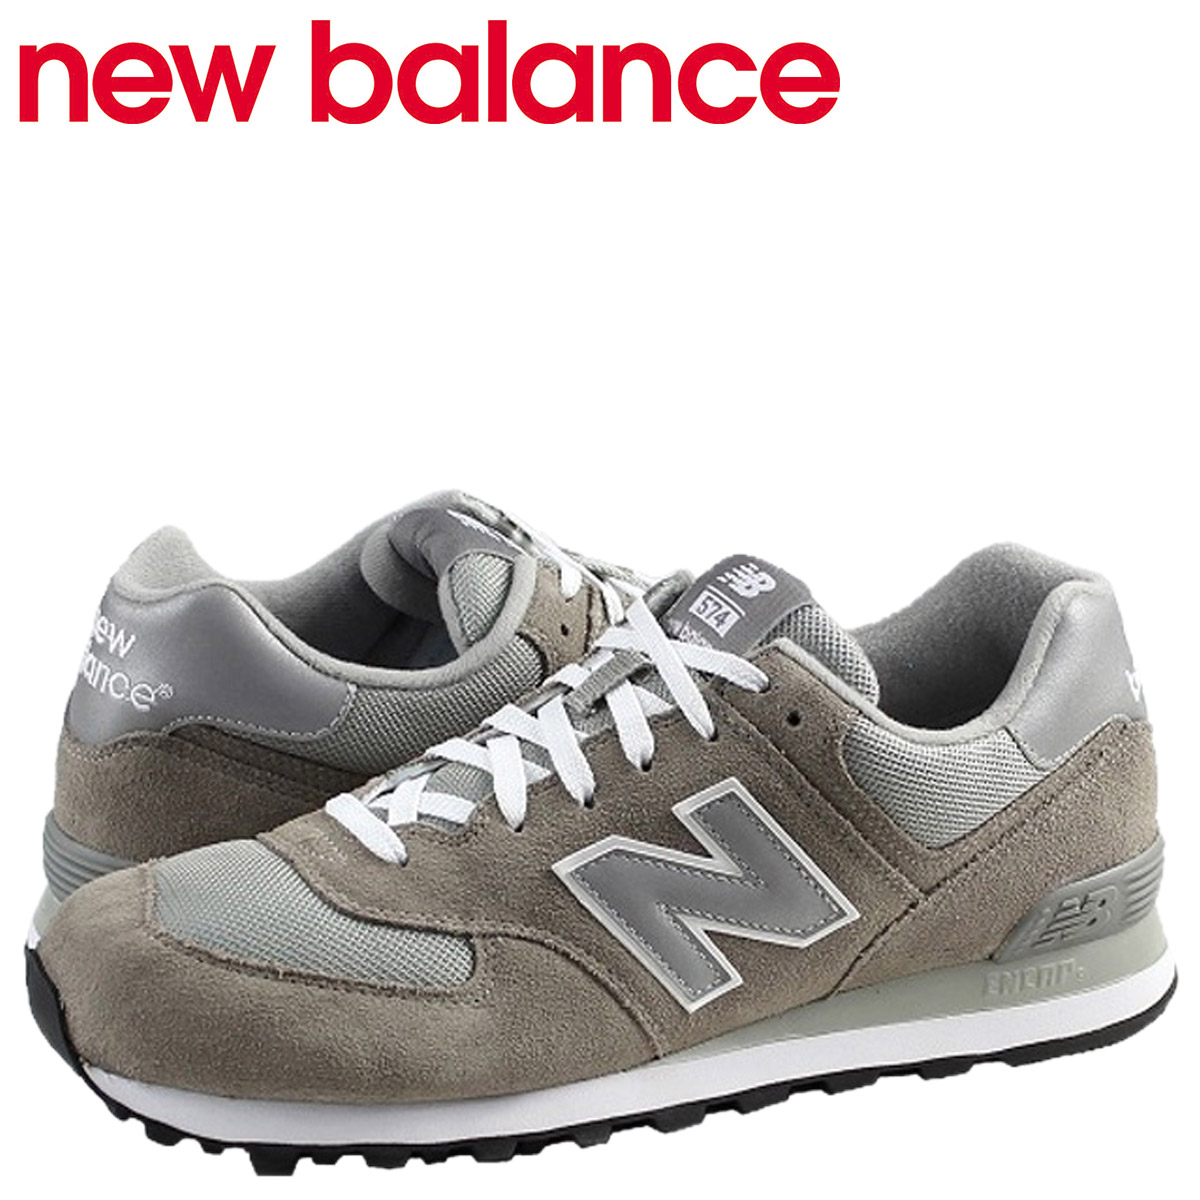 info for 94b8a 76fb9 New Balance new balance 574 men's sneakers M574GS D Wise gray